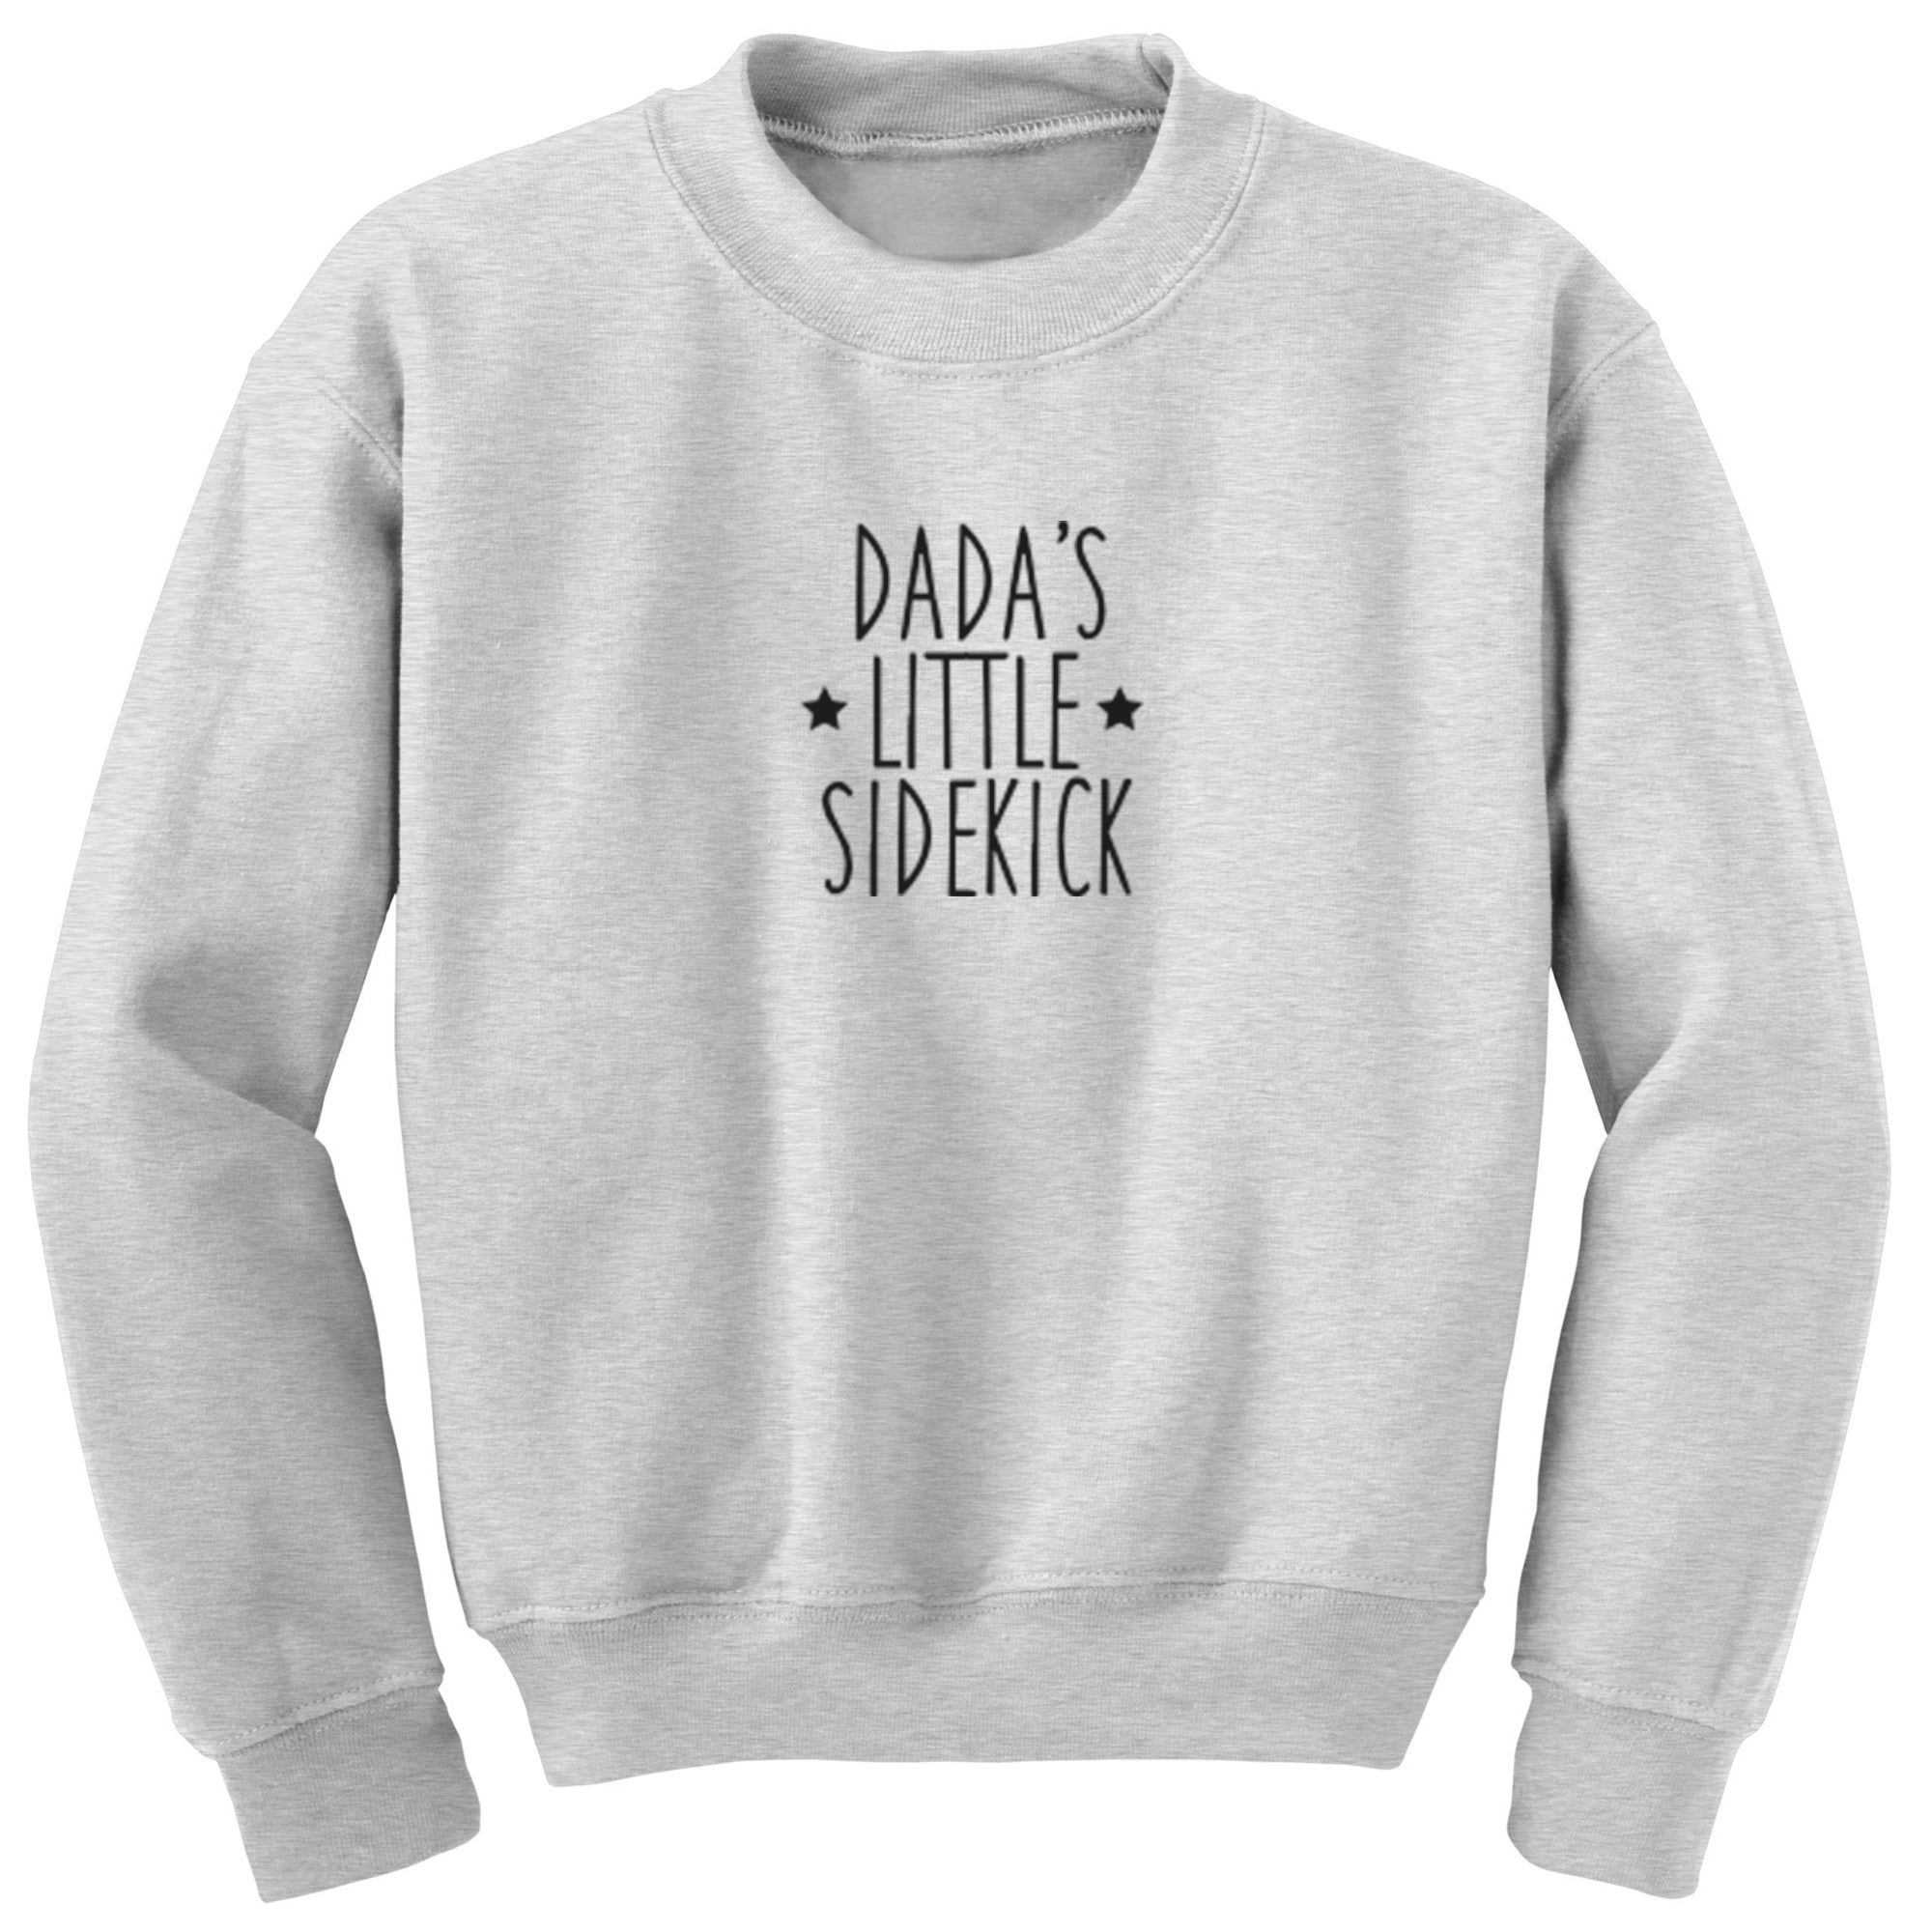 Dada's Little Sidekick Childrens Ages 3/4-12/14 Printed Jumper S0903 - Illustrated Identity Ltd.